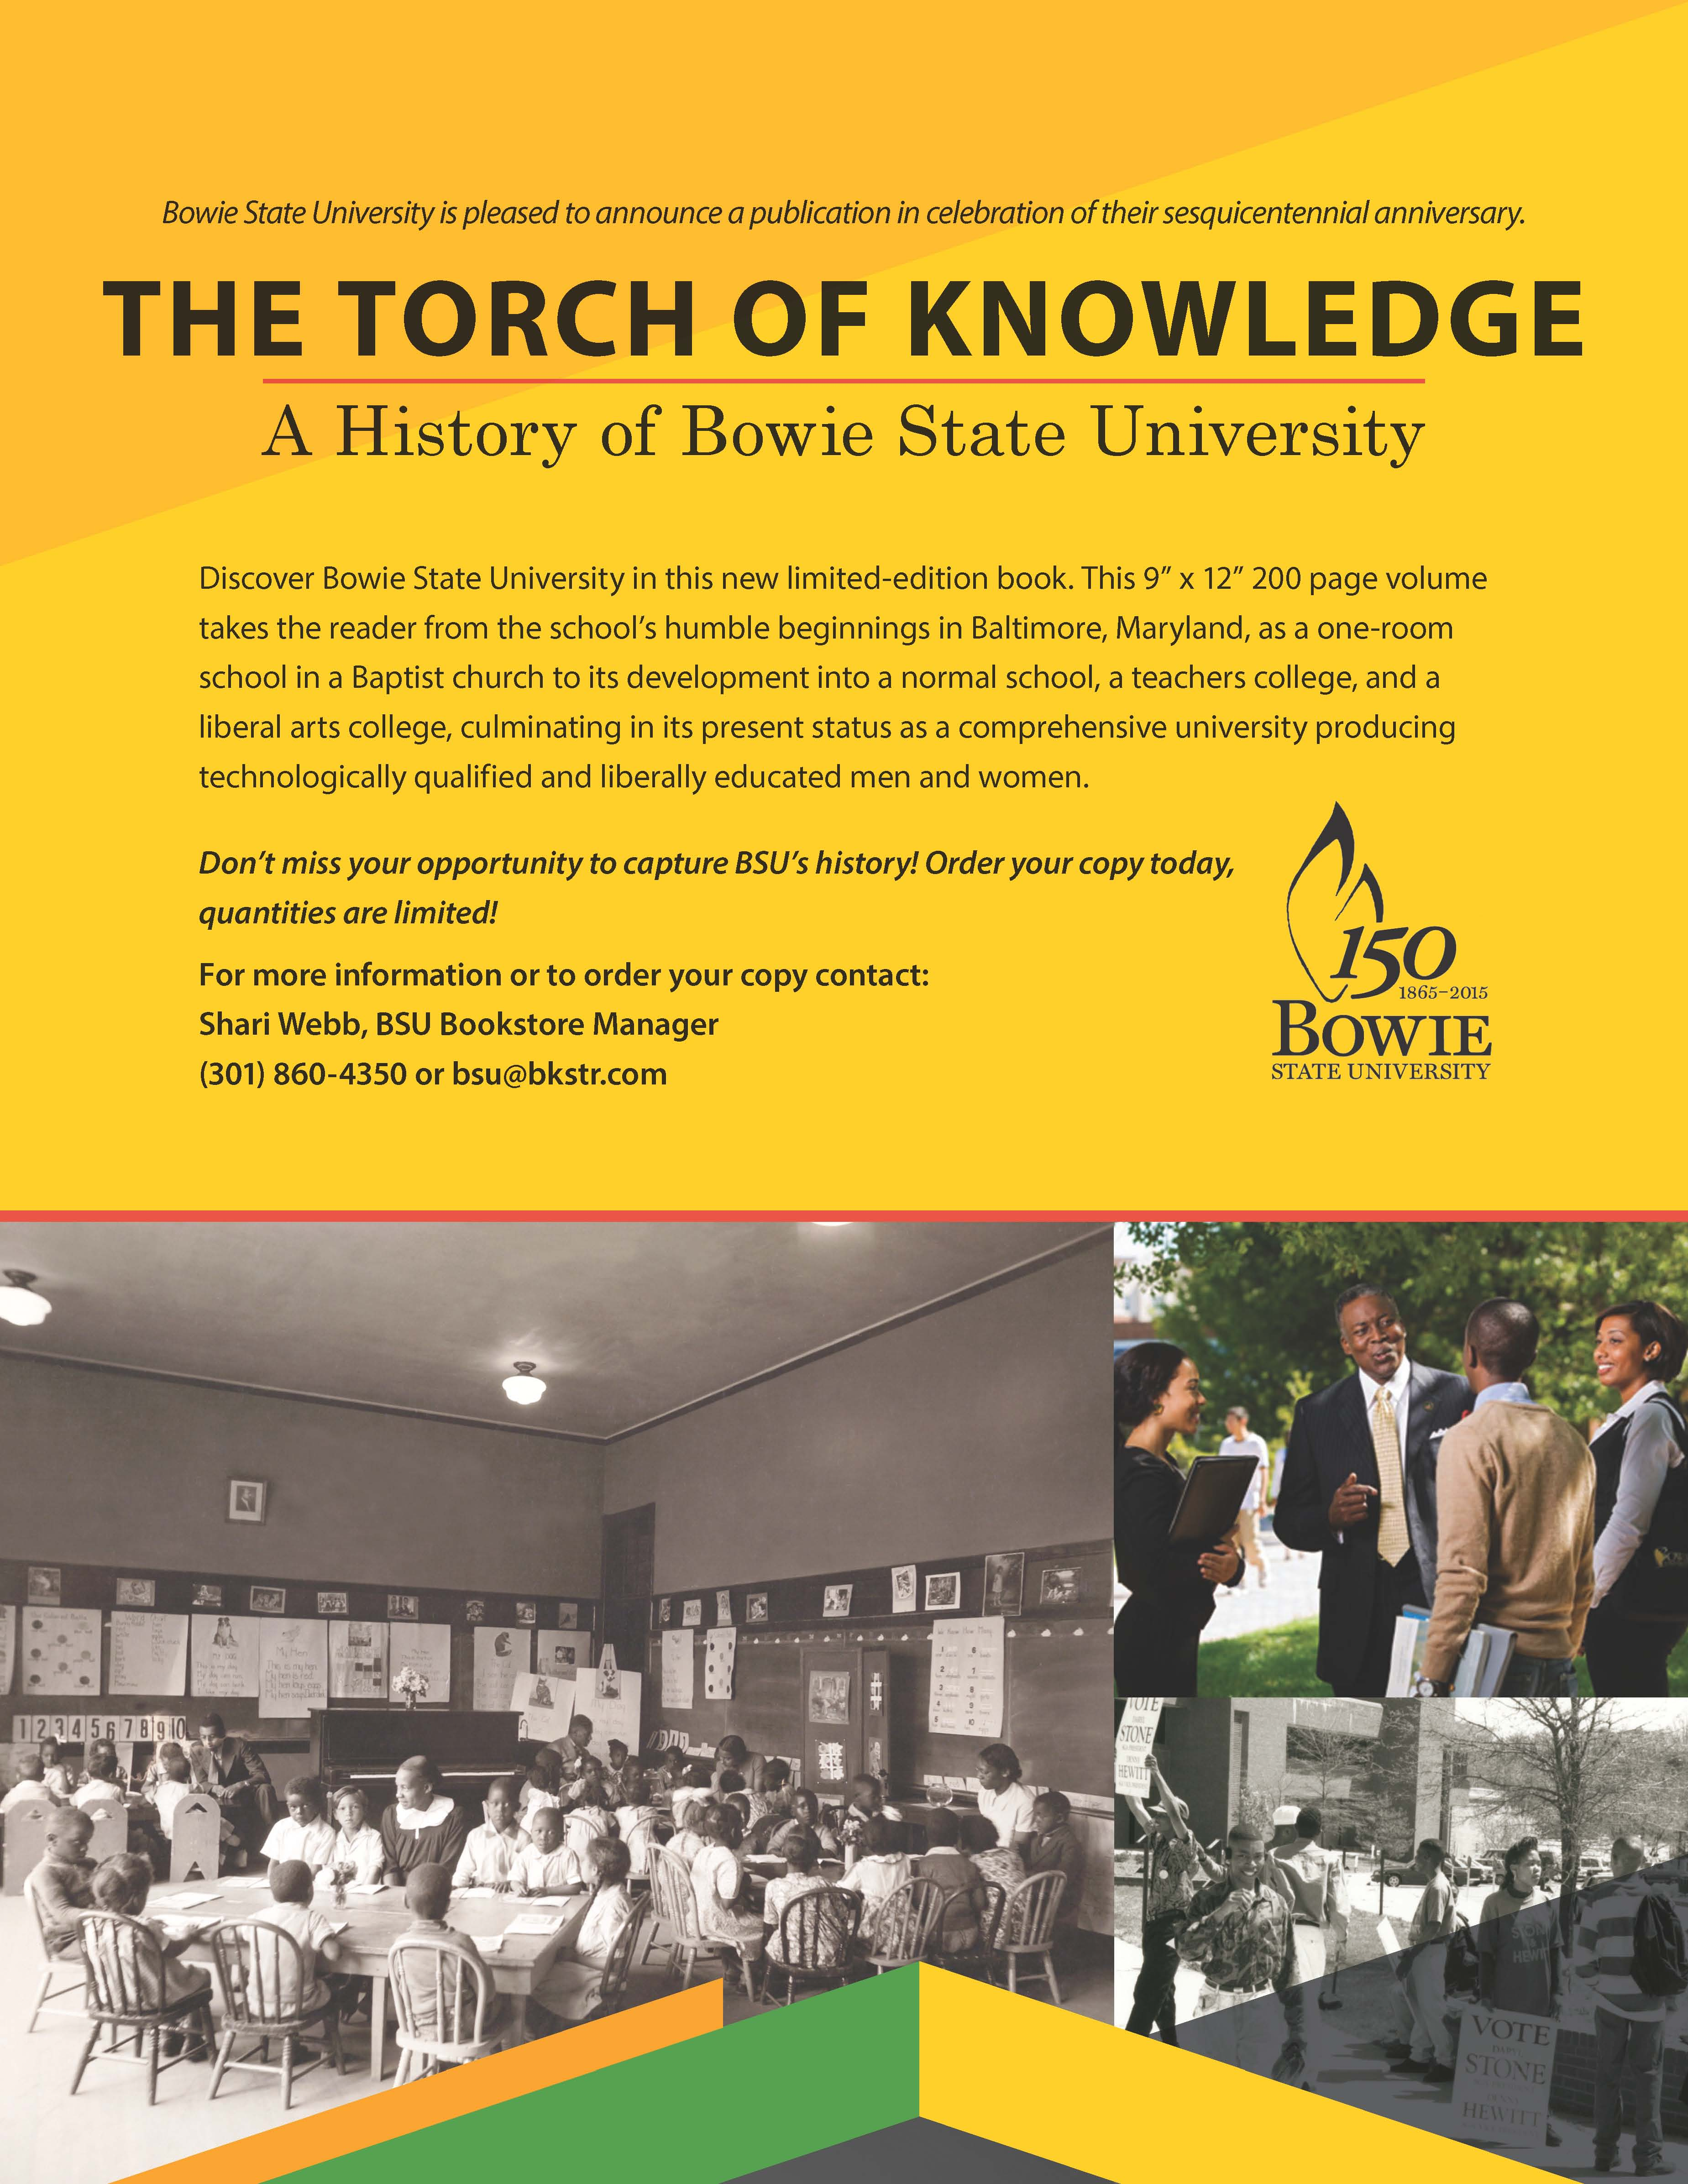 Torch of Knowledge: A History of Bowie State University